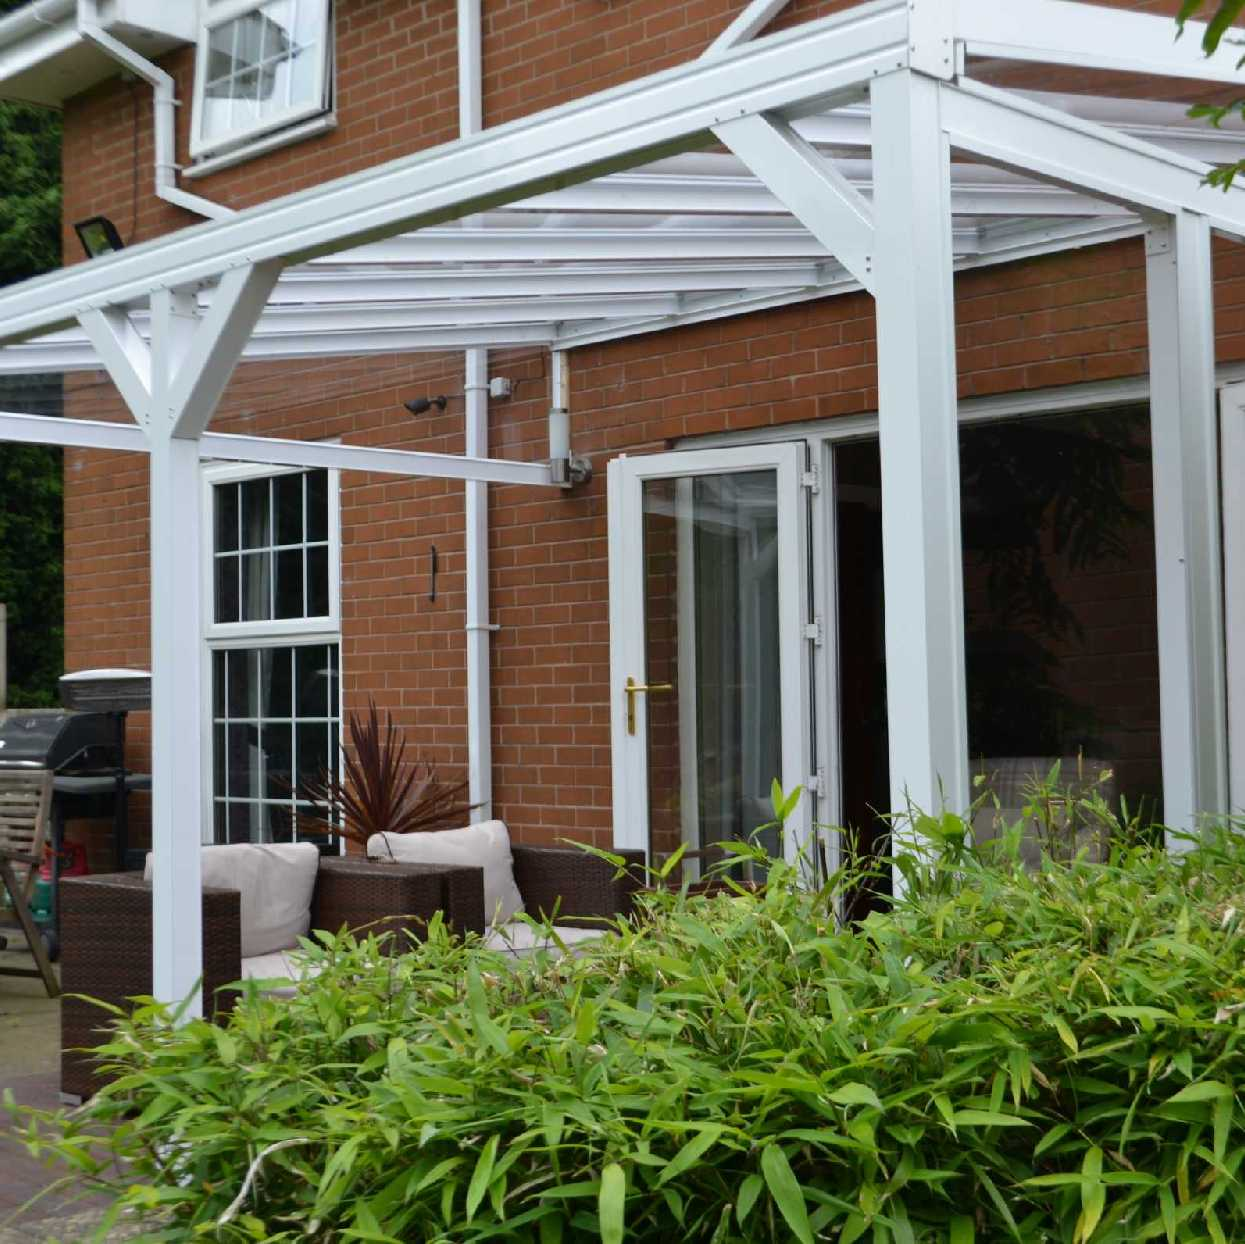 Omega Smart Lean-To Canopy UNGLAZED for 6mm Glazing - 8.4m (W) x 3.0m (P), (4) Supporting Posts from Omega Build